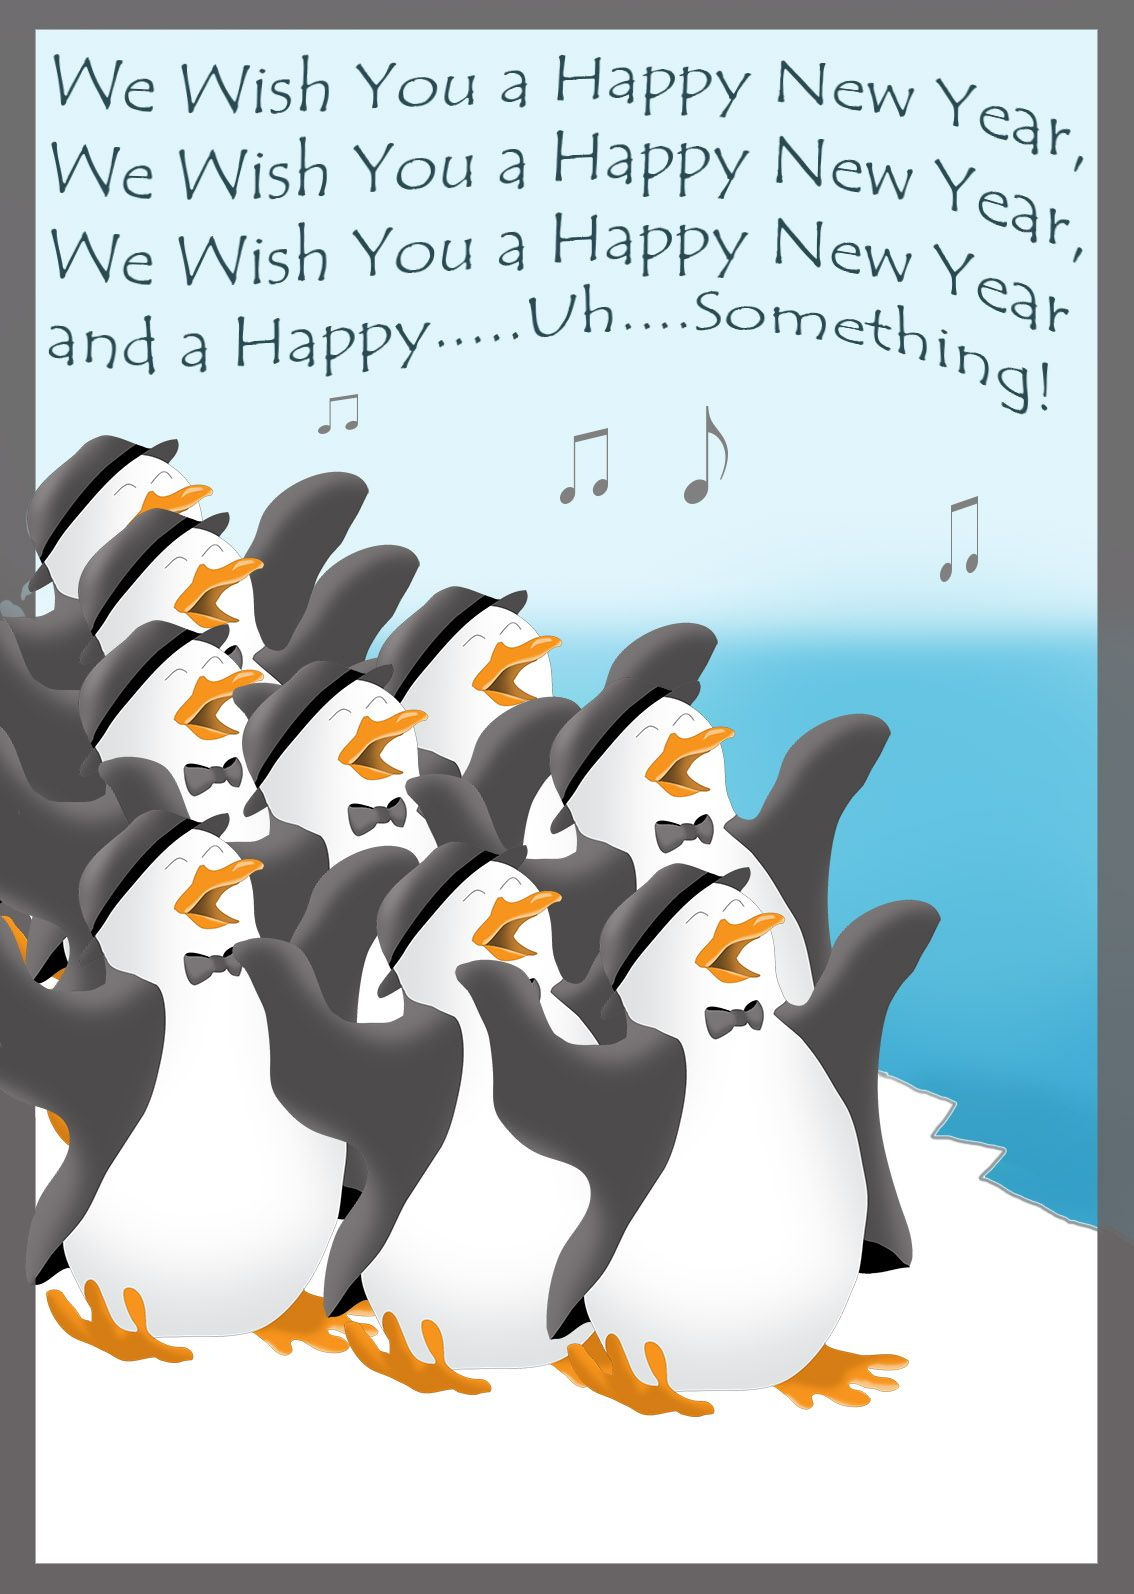 Funny New Year greeting with festively dressed penguins